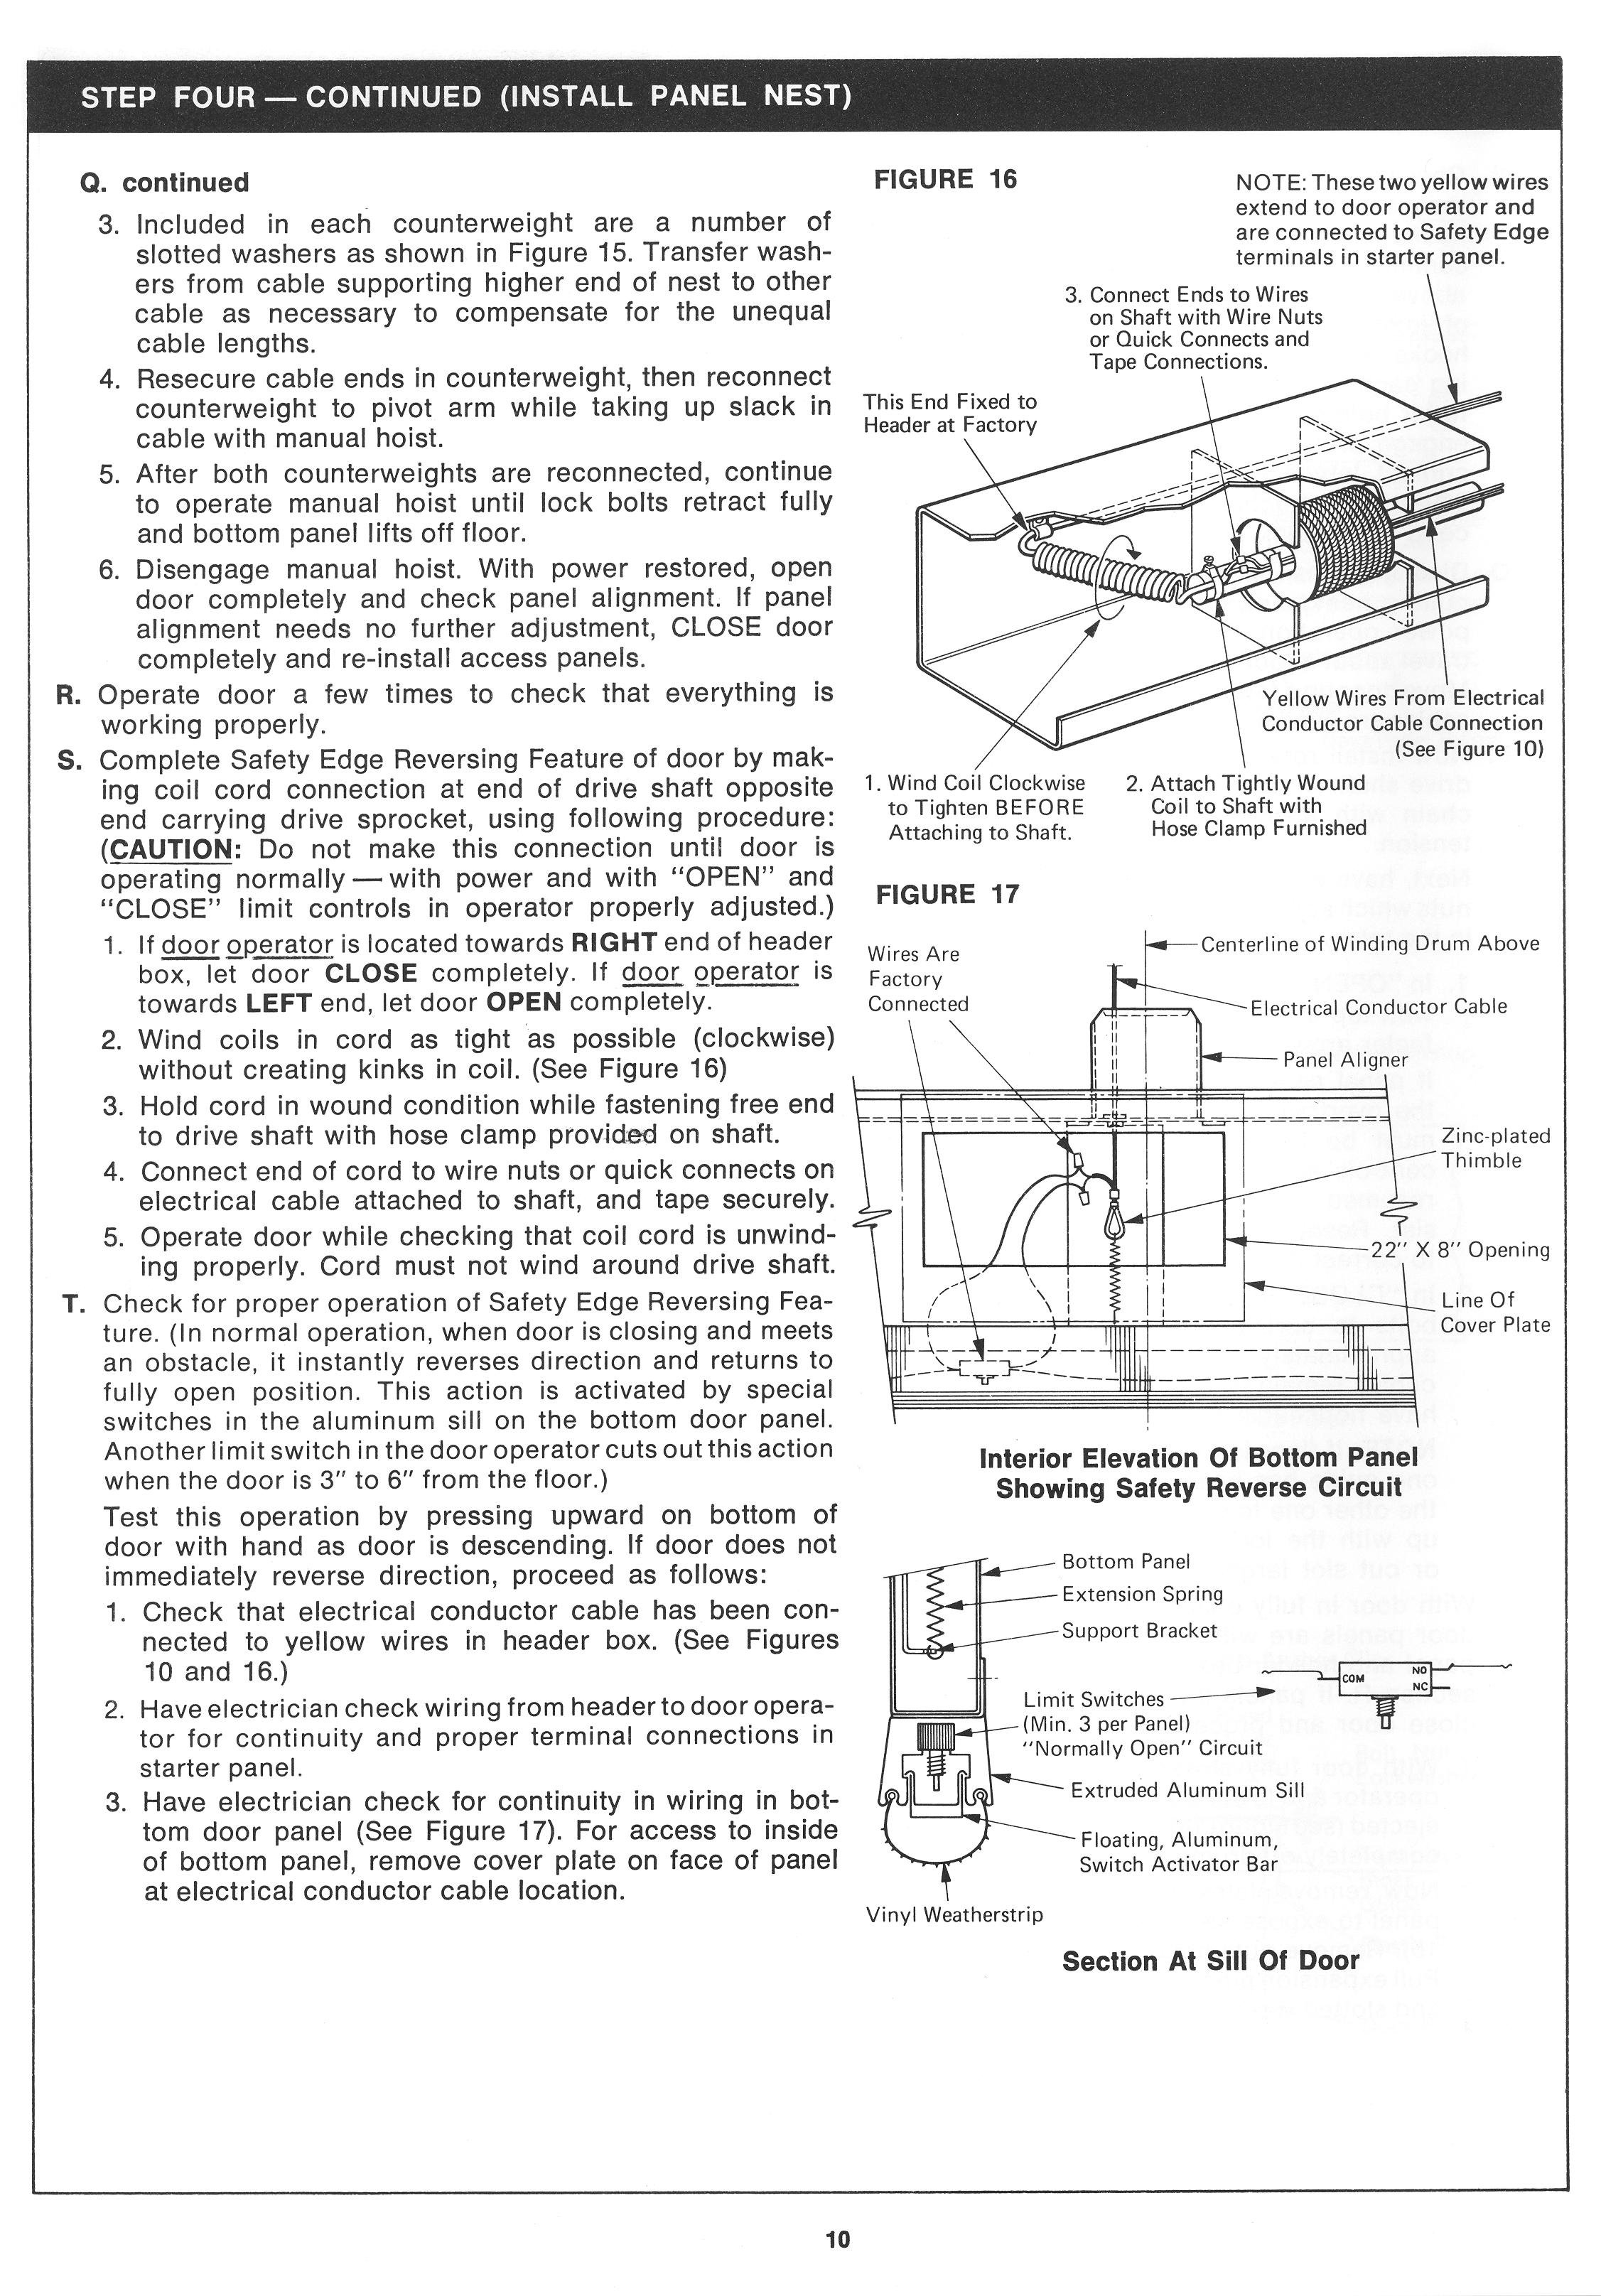 Inryco Telescoping Door Wiring Diagram For Diy Enthusiasts Ops Diagrams Index Of Telescope Operations Manual Manuals Volume 1 Rh Loen Ucolick Org Hardware